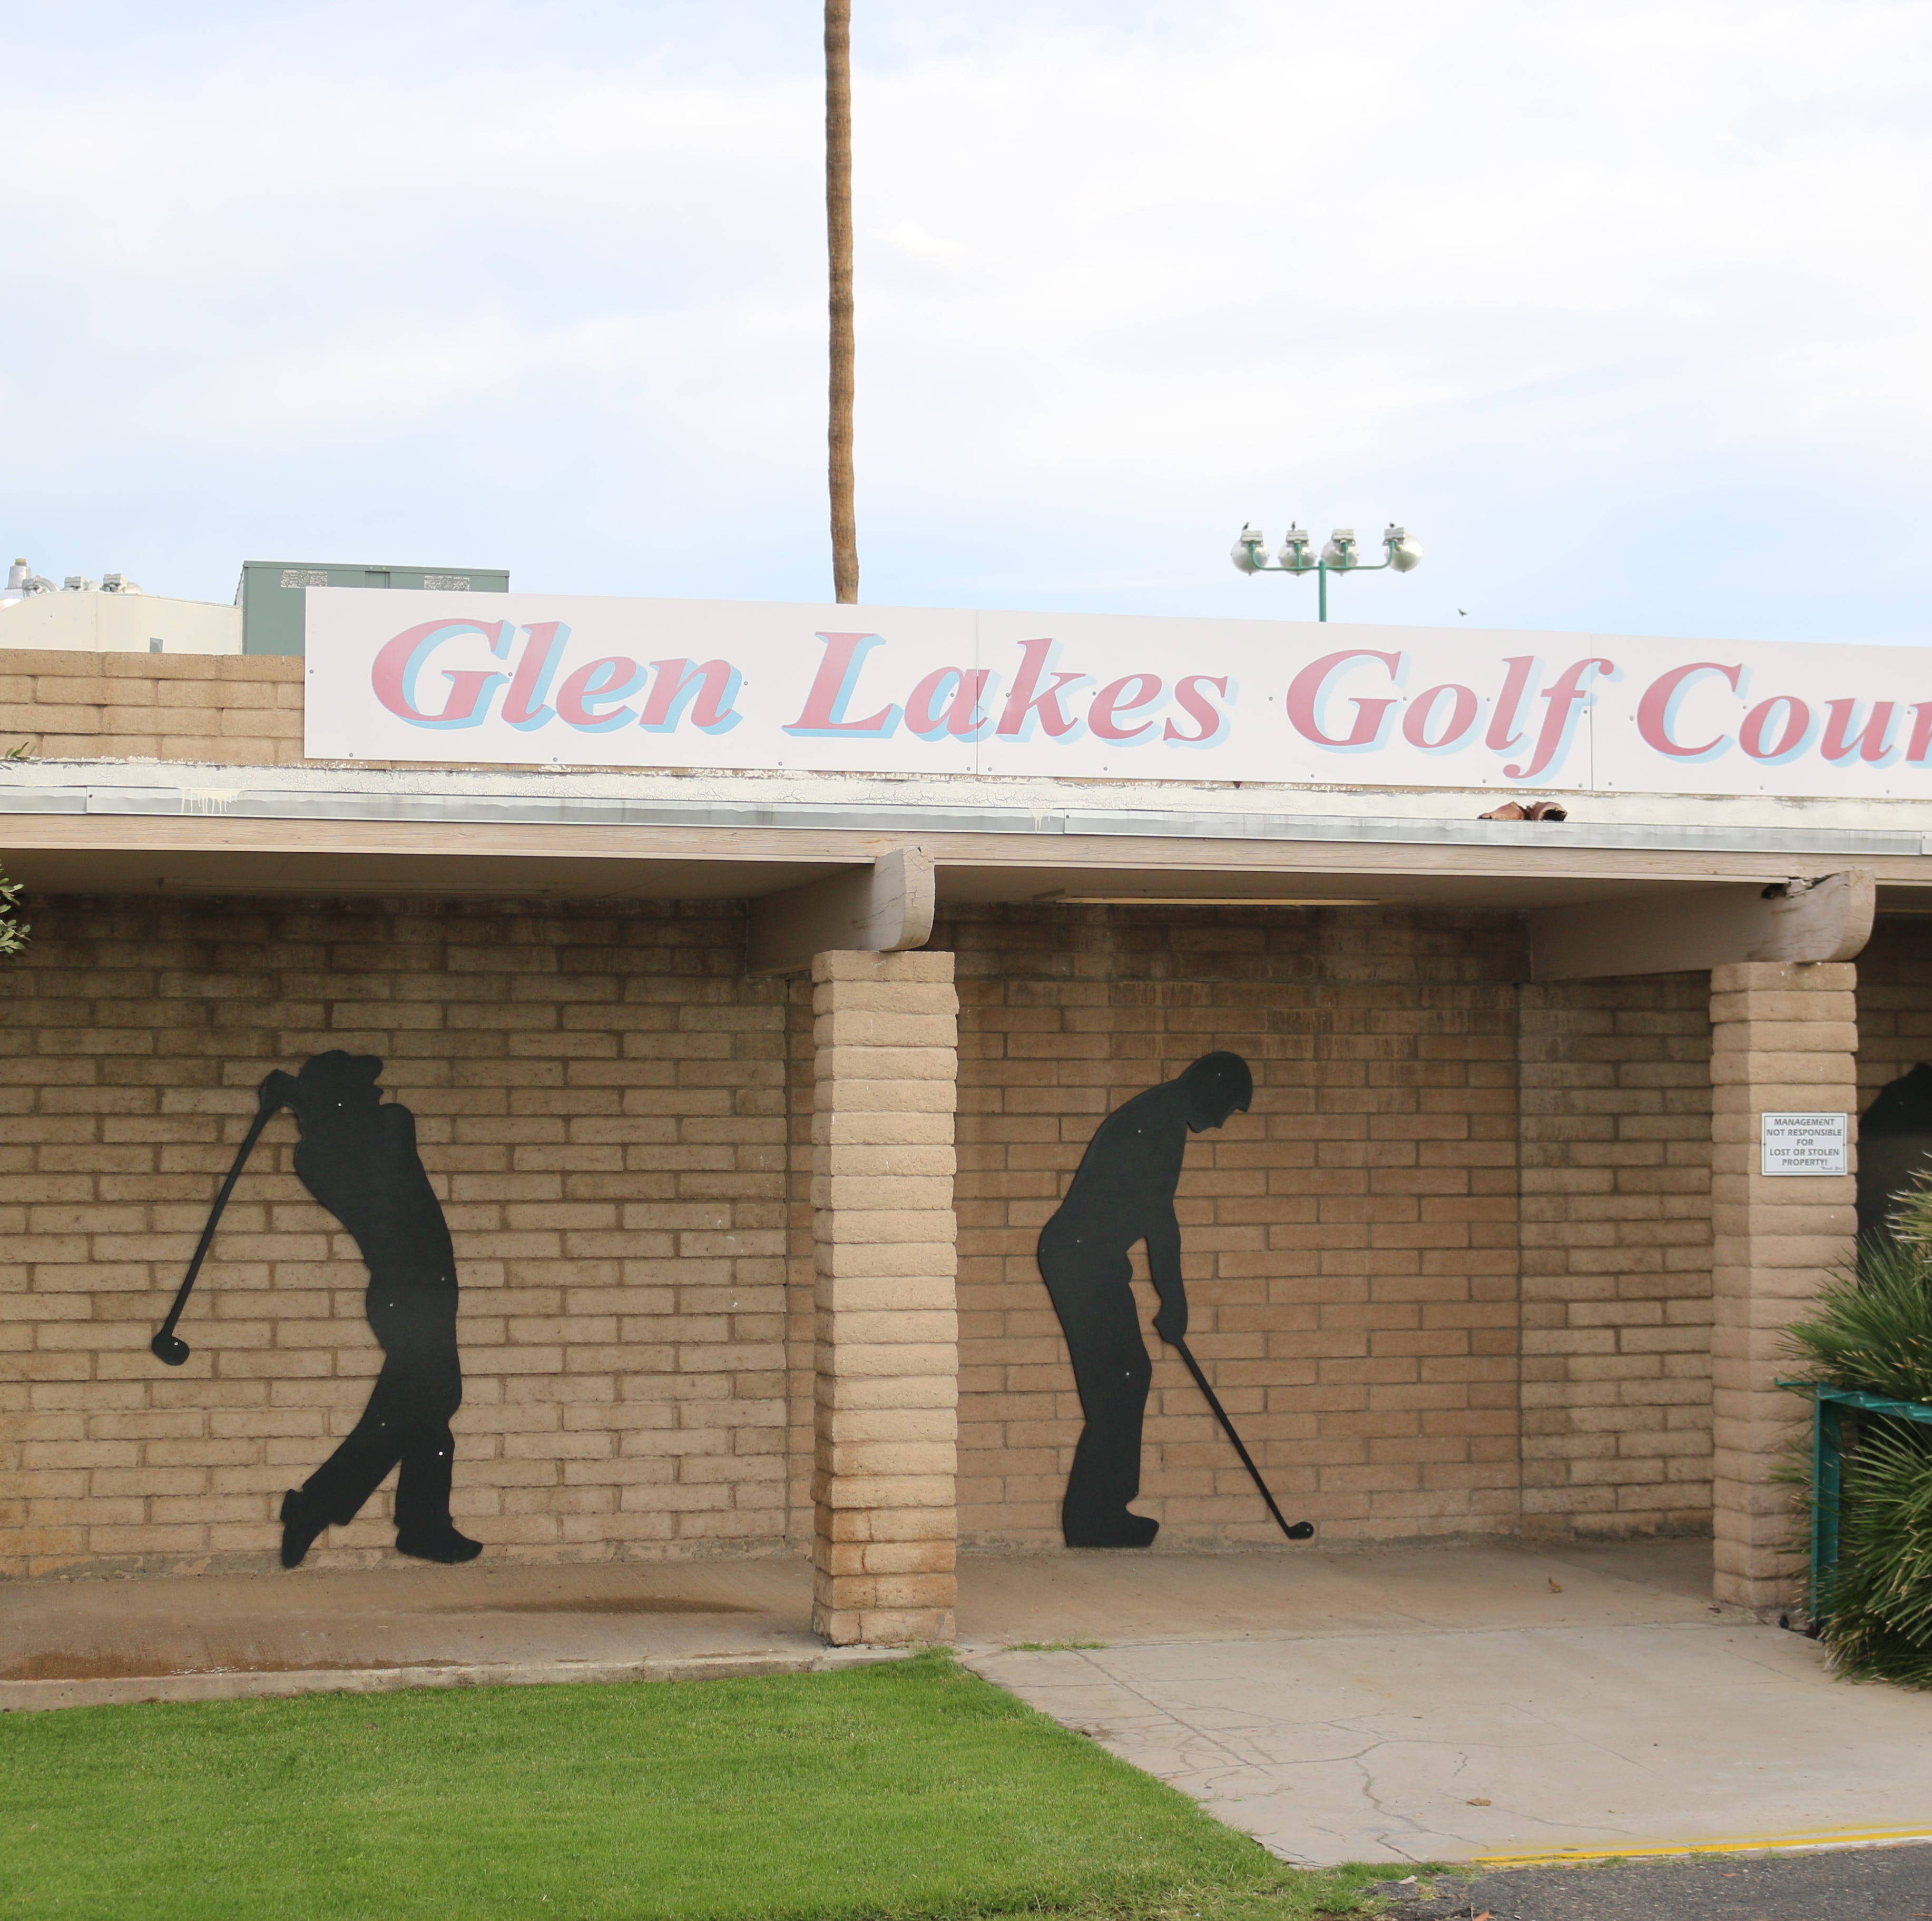 Glen Lakes Golf Course in Glendale closes Sunday. Here's what will happen next with the land.